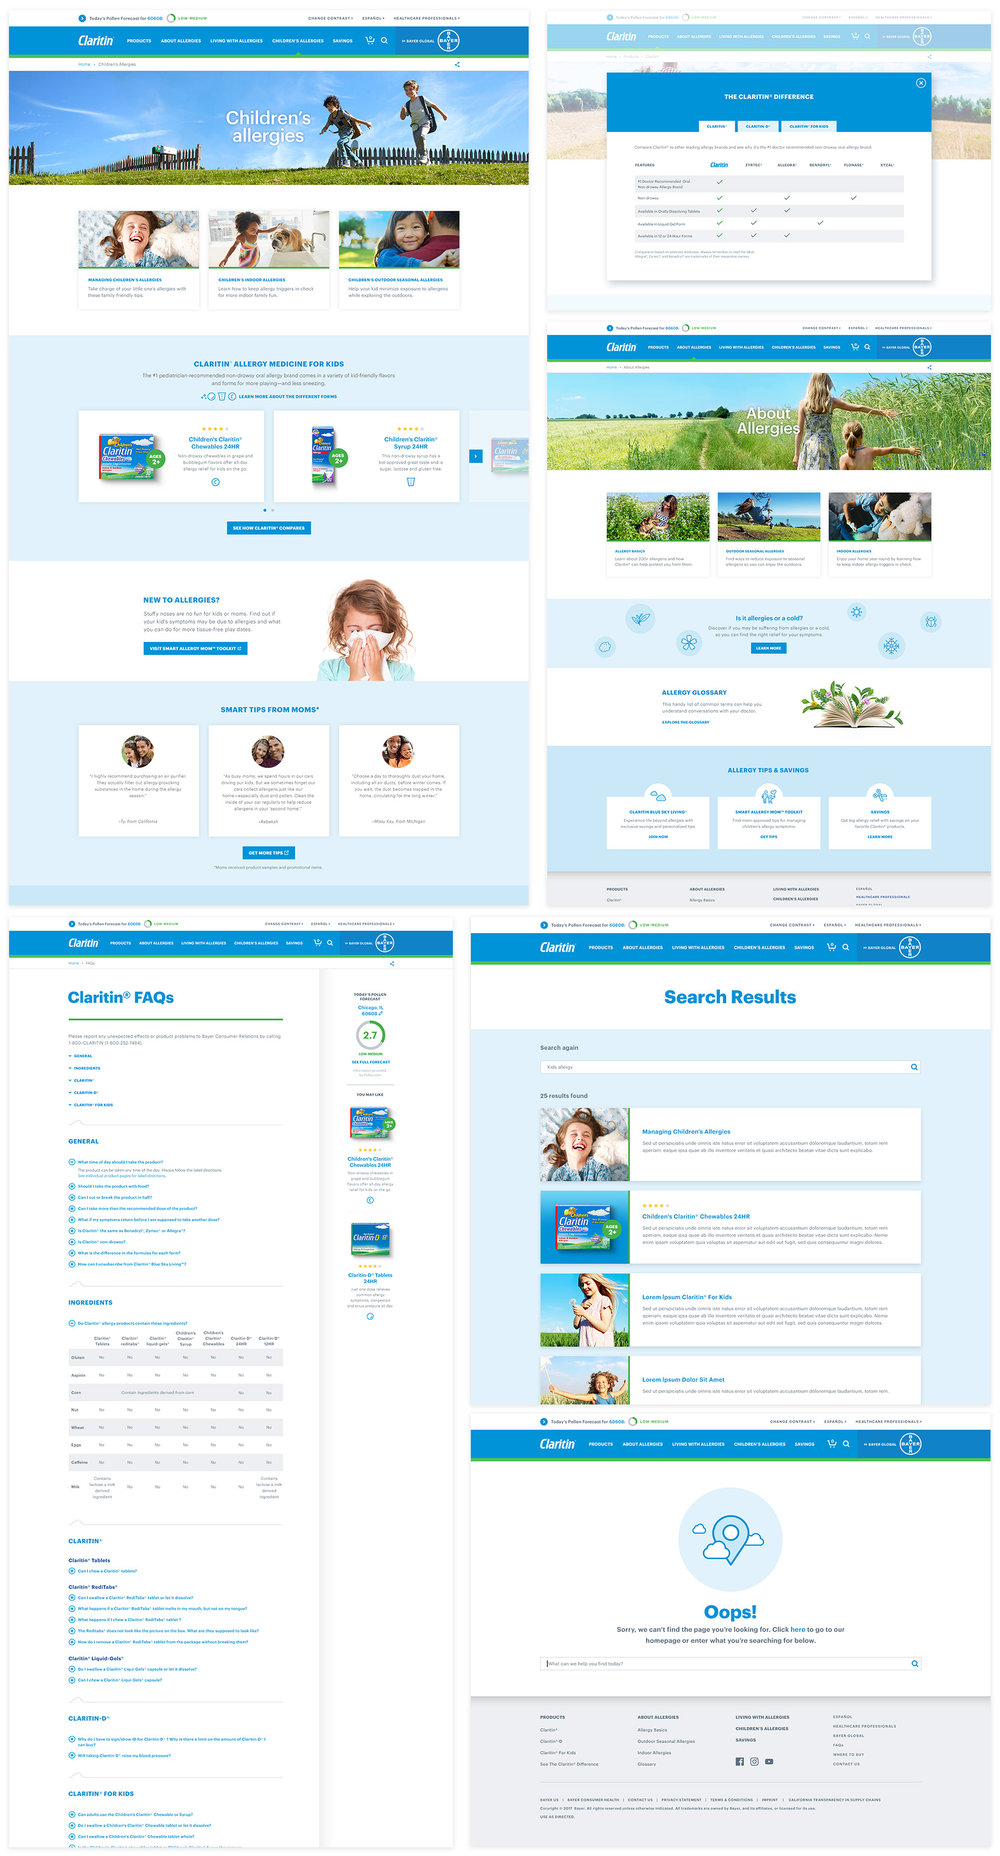 page designs collection.jpg